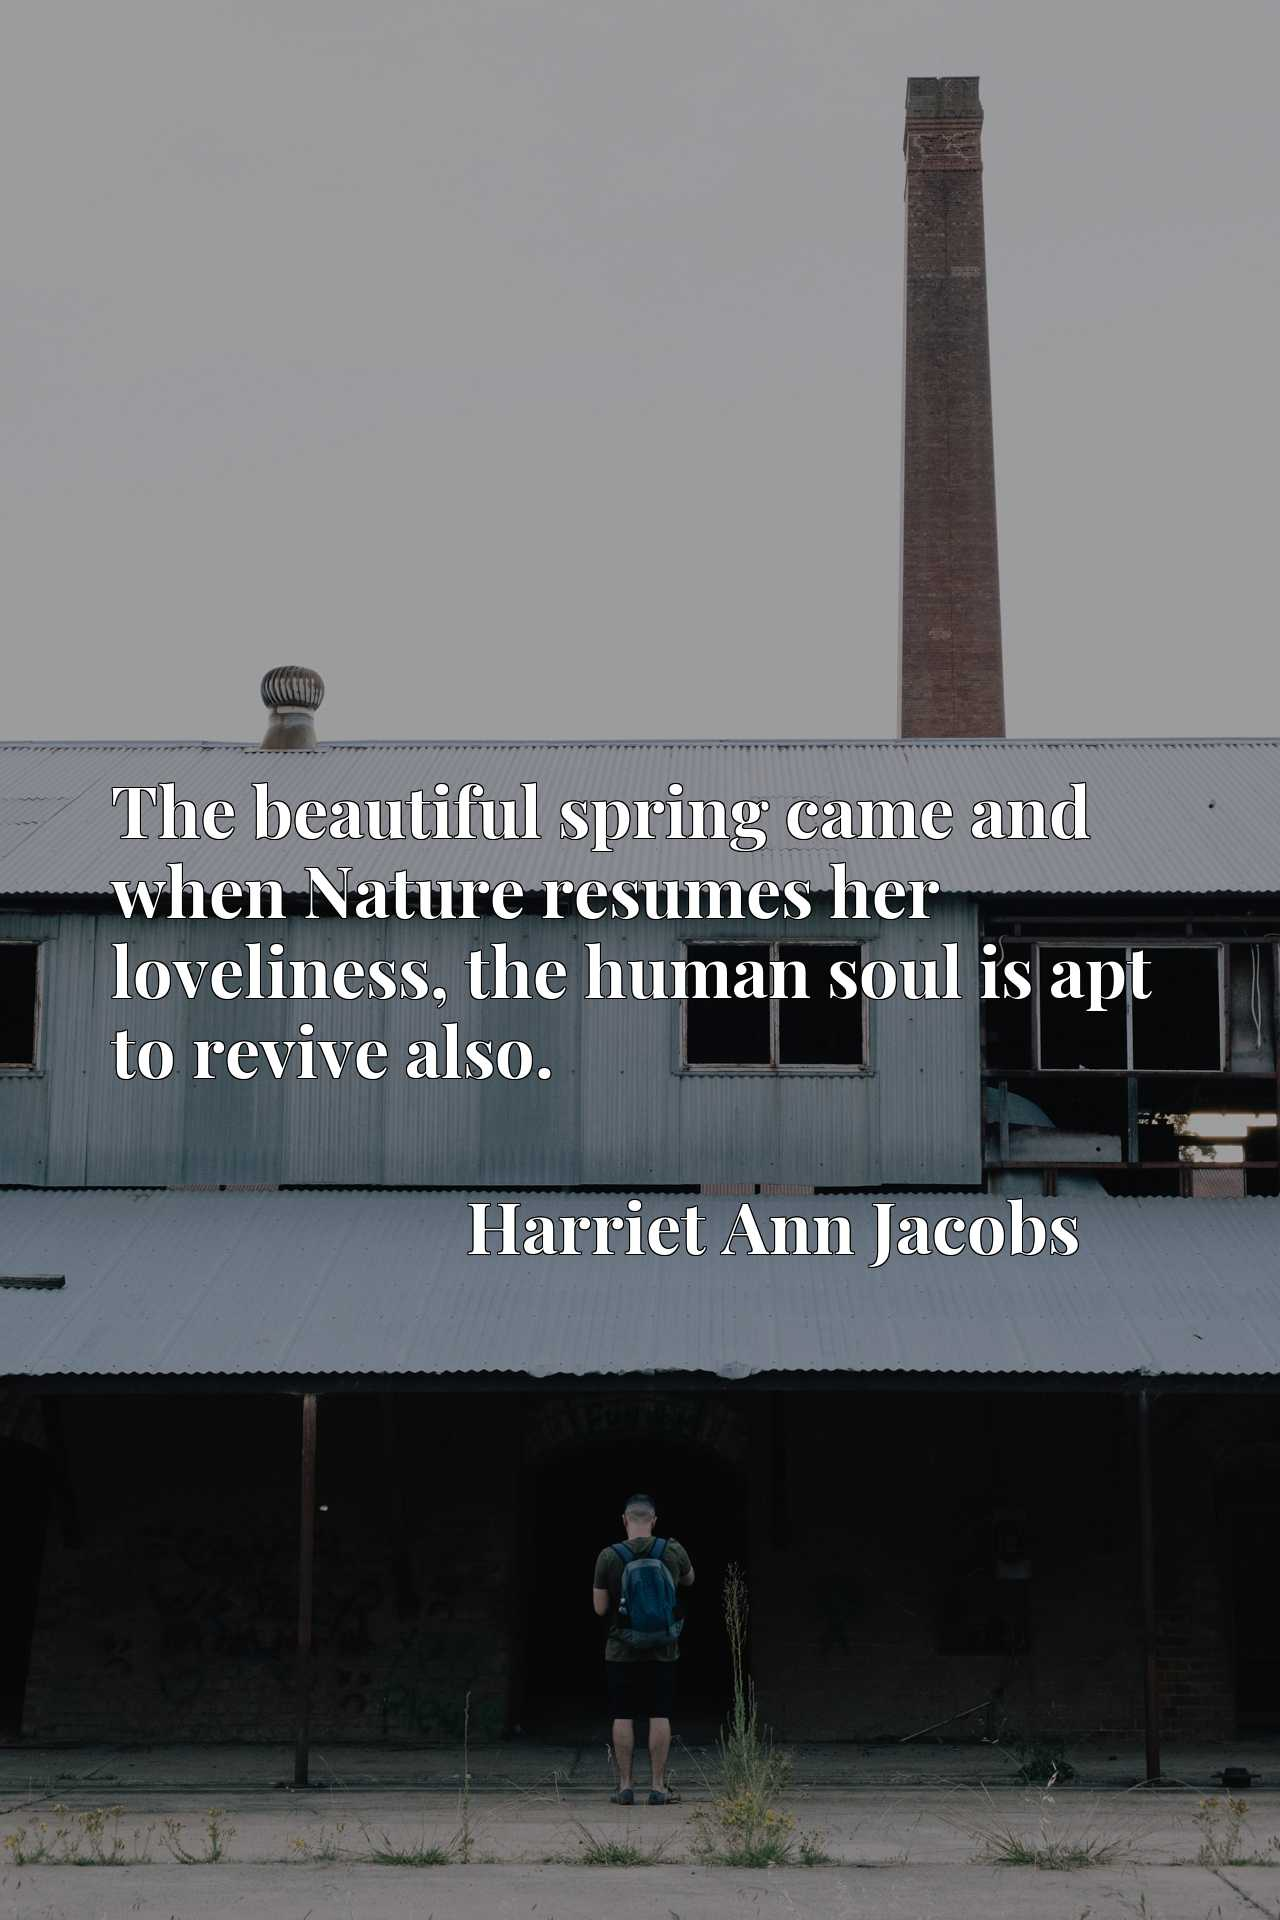 Quote Picture :The beautiful spring came and when Nature resumes her loveliness, the human soul is apt to revive also.